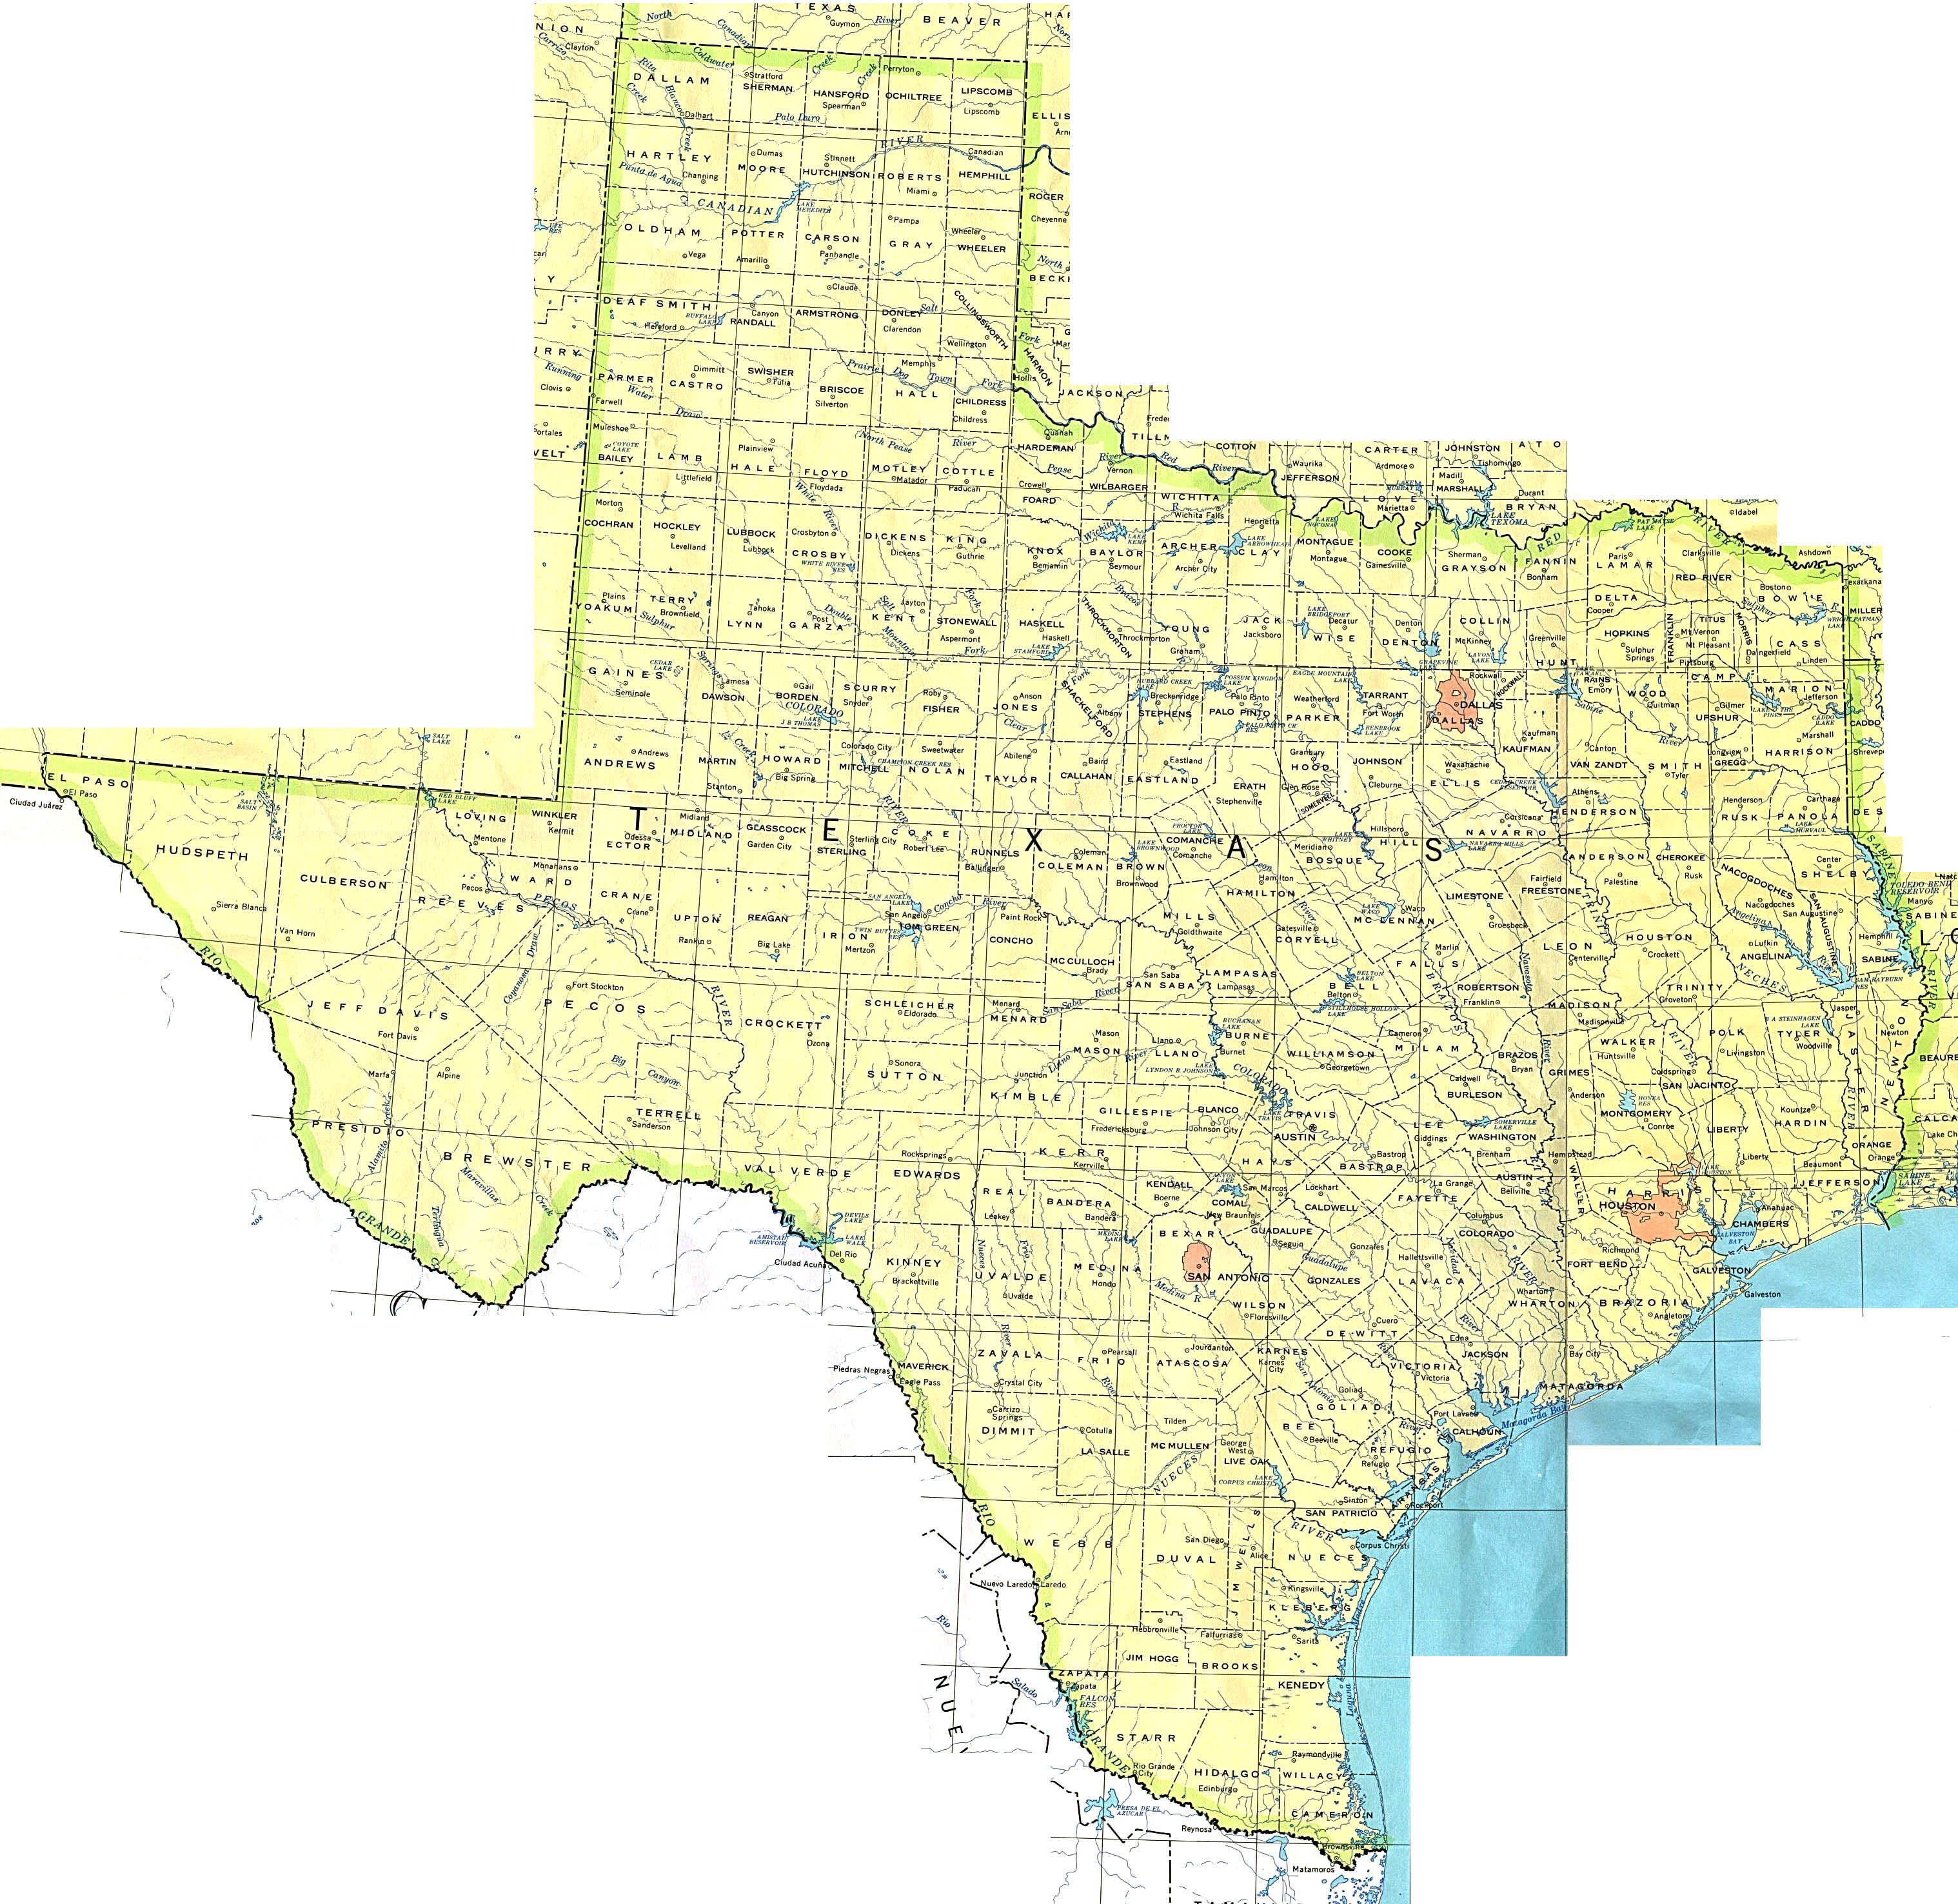 Texas Maps - Perry-Castañeda Map Collection - Ut Library Online - Texas State Railroad Route Map